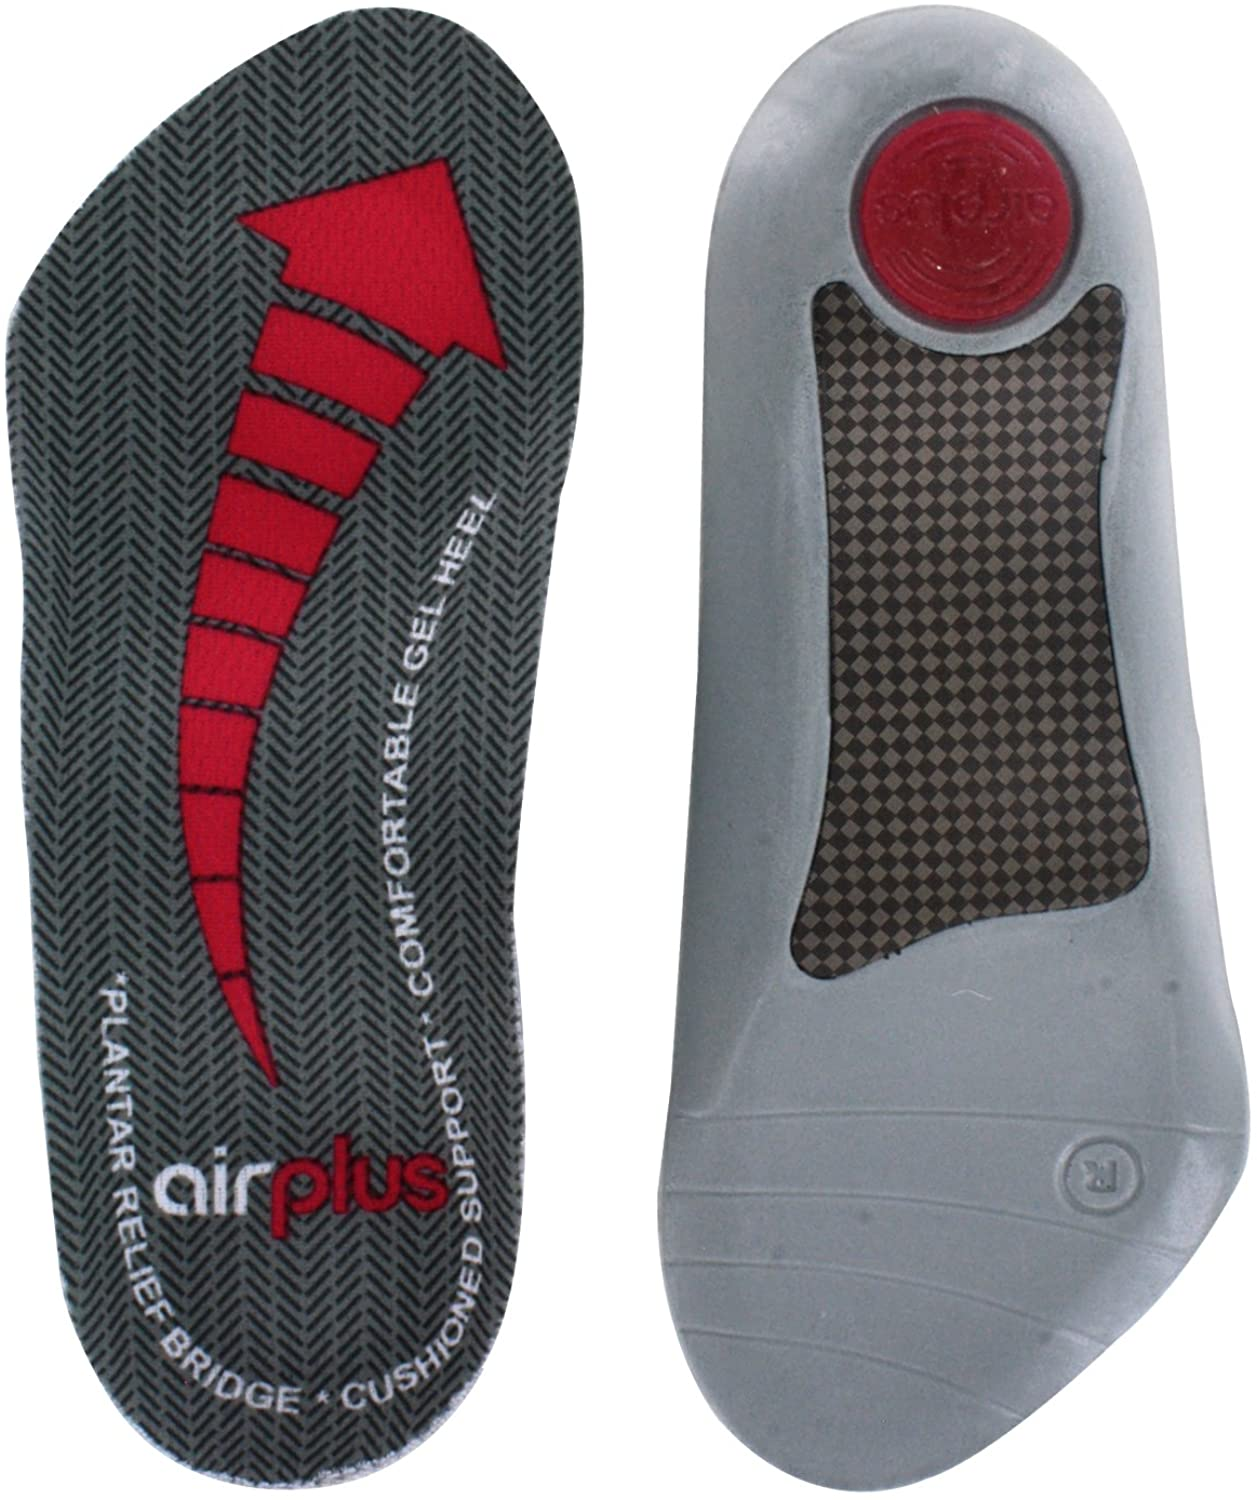 Airplus Plantar Fasciitis Orthotic Shoe Insole for Extra Cushioning and Pain Relief, Women's, Size 5-11